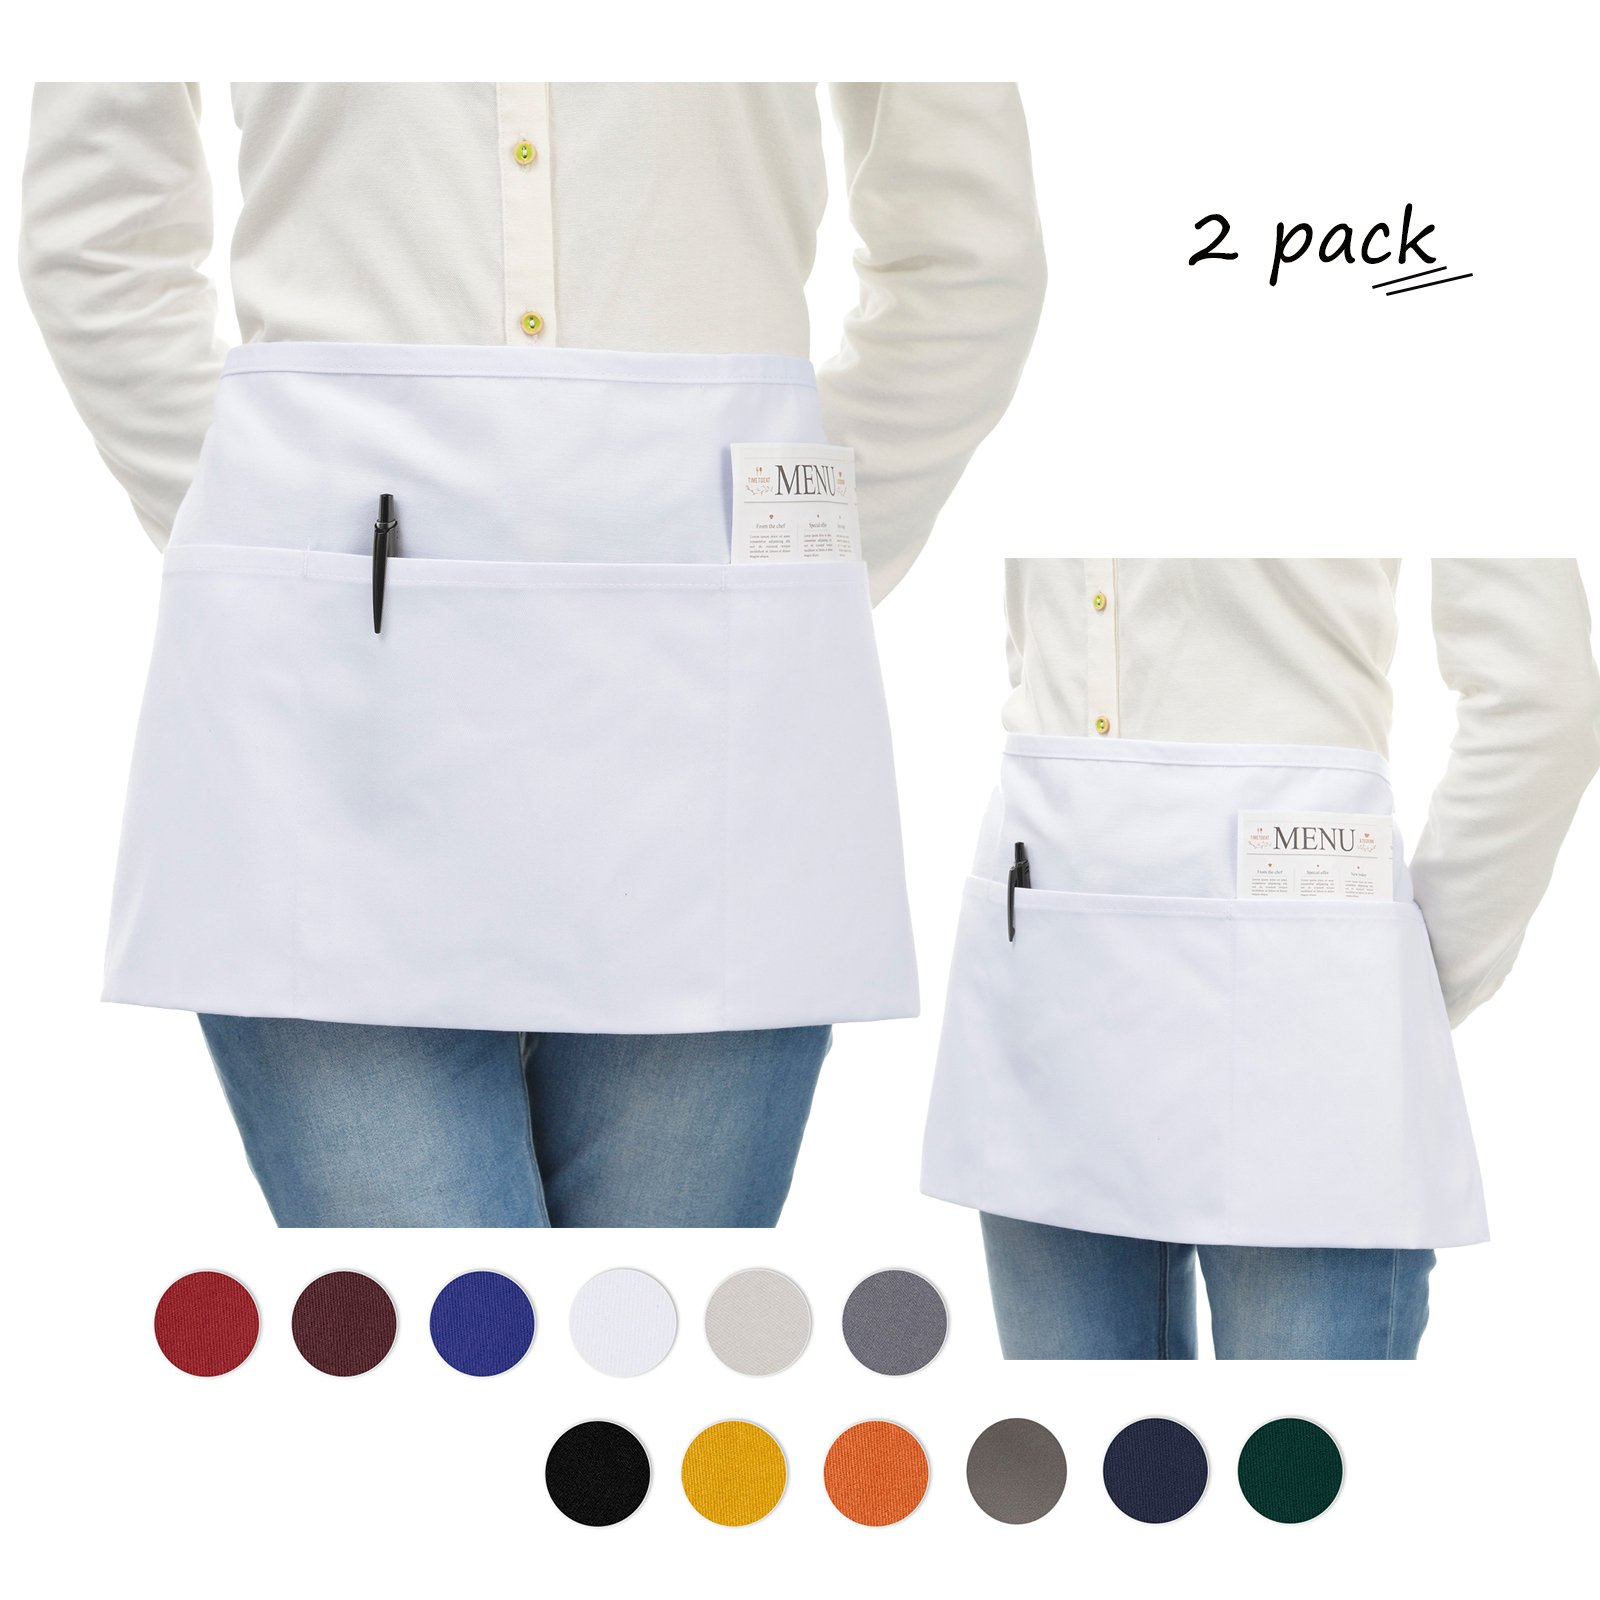 VEEYOO Stylist Waist Chef Apron with Pockets, Set of 2, Durable Spun Poly Cotton, Restaurant Short Bistro Half Aprons for Men Women, 24x12 inches, White